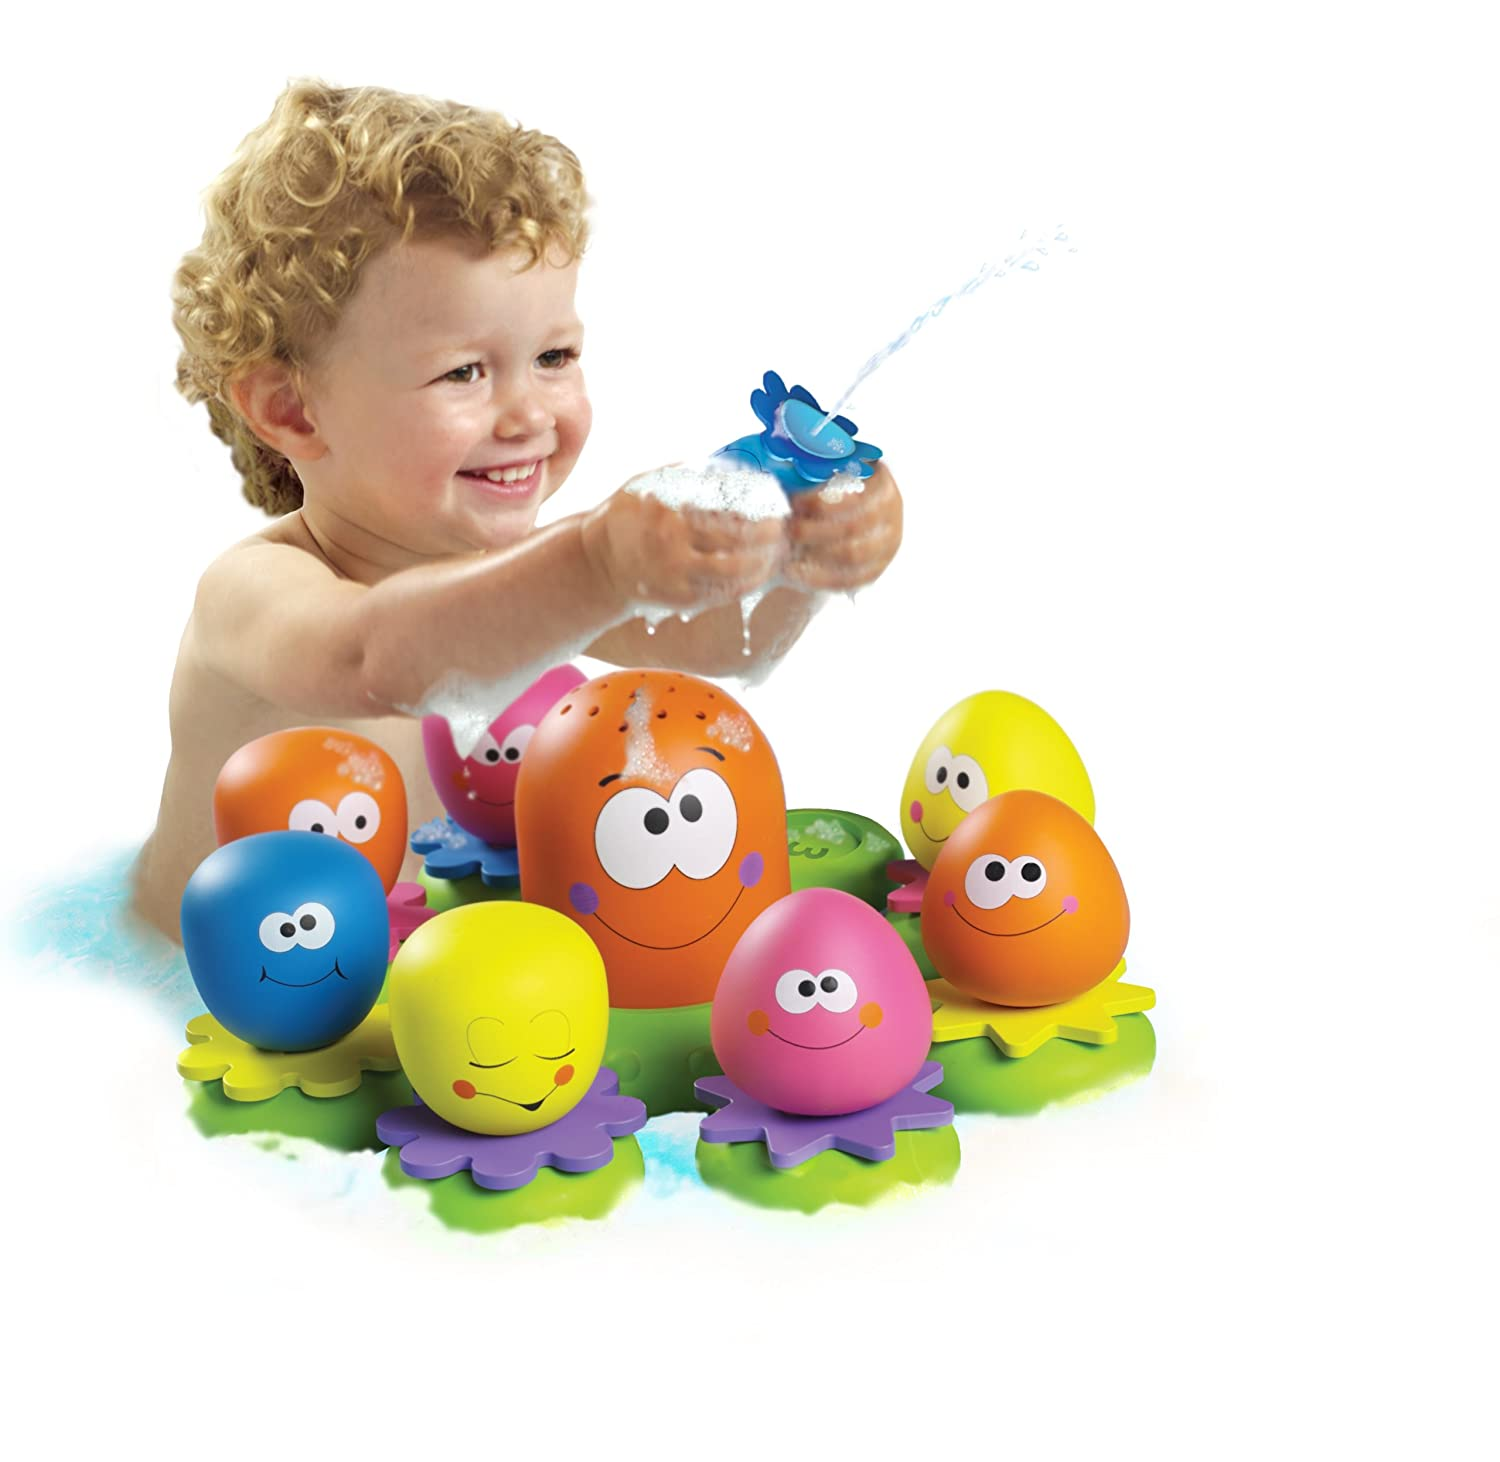 TOMY Octopal Squirters Bath Toy Amazon Toys & Games